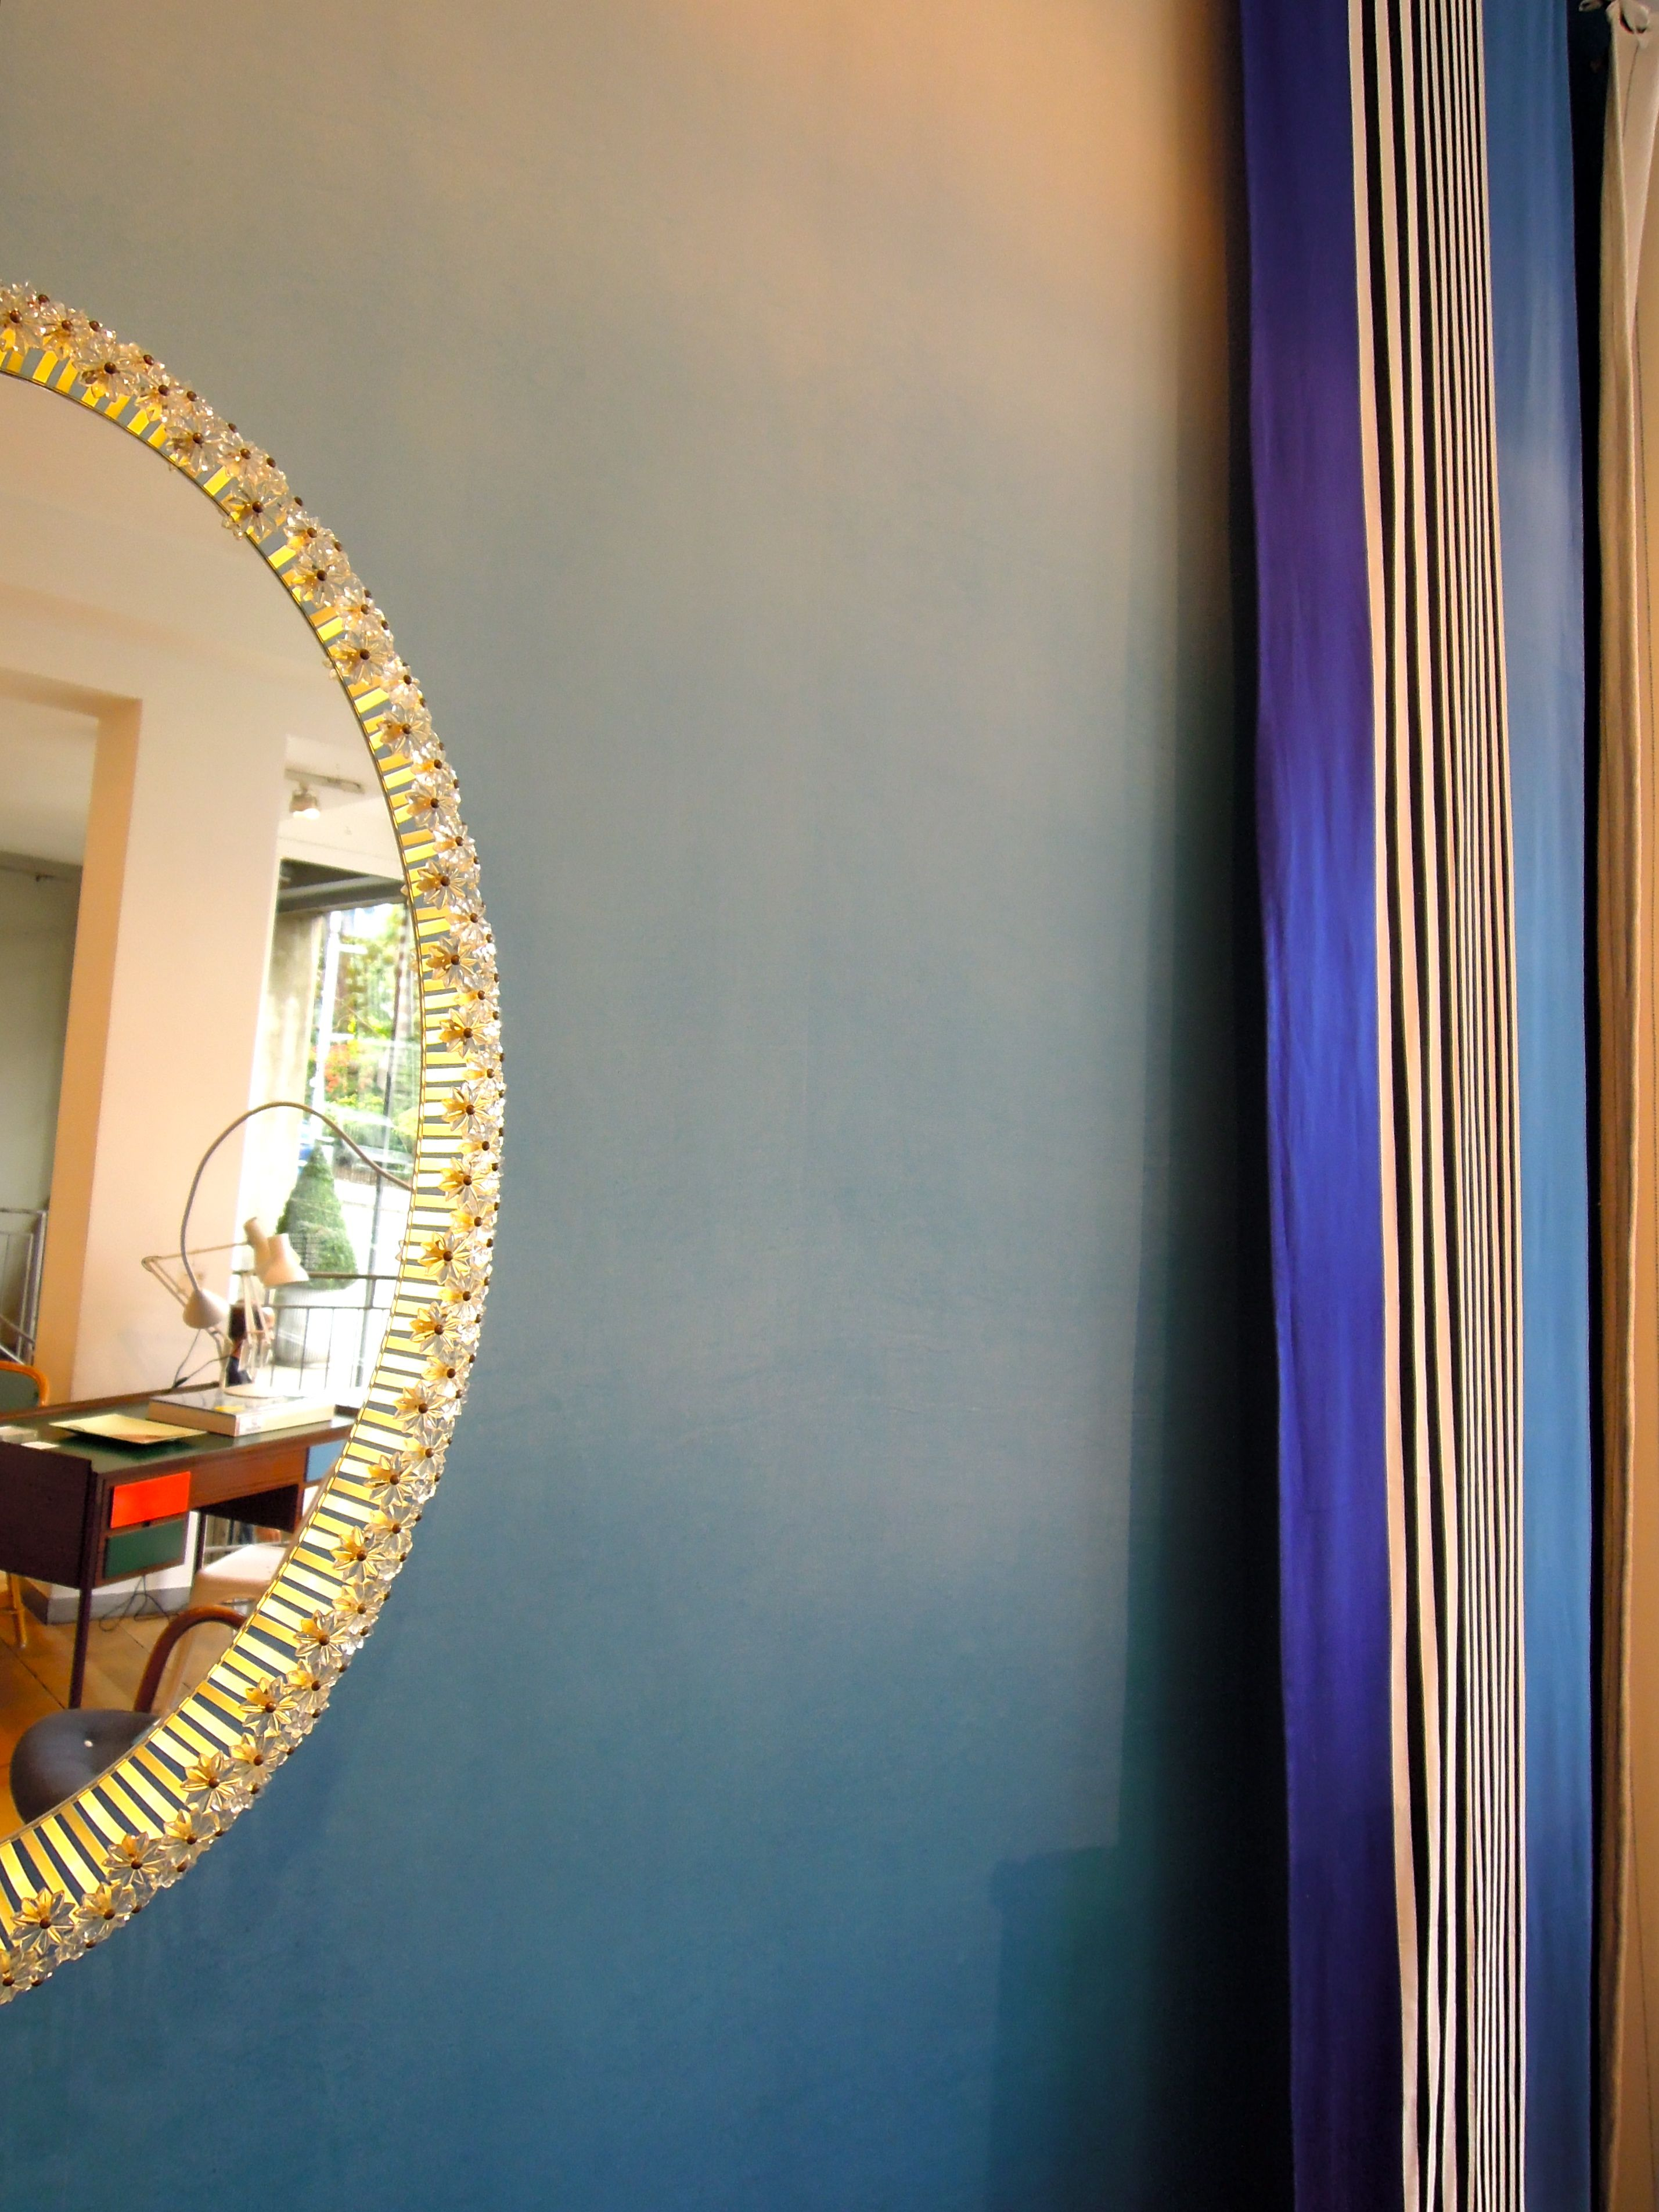 Pin by ruby in the dust on vintage wall mirrors pinterest online retailer dealer in mid century luxury design specialising in vintage furniture chandeliers art deco mirrors arubaitofo Image collections